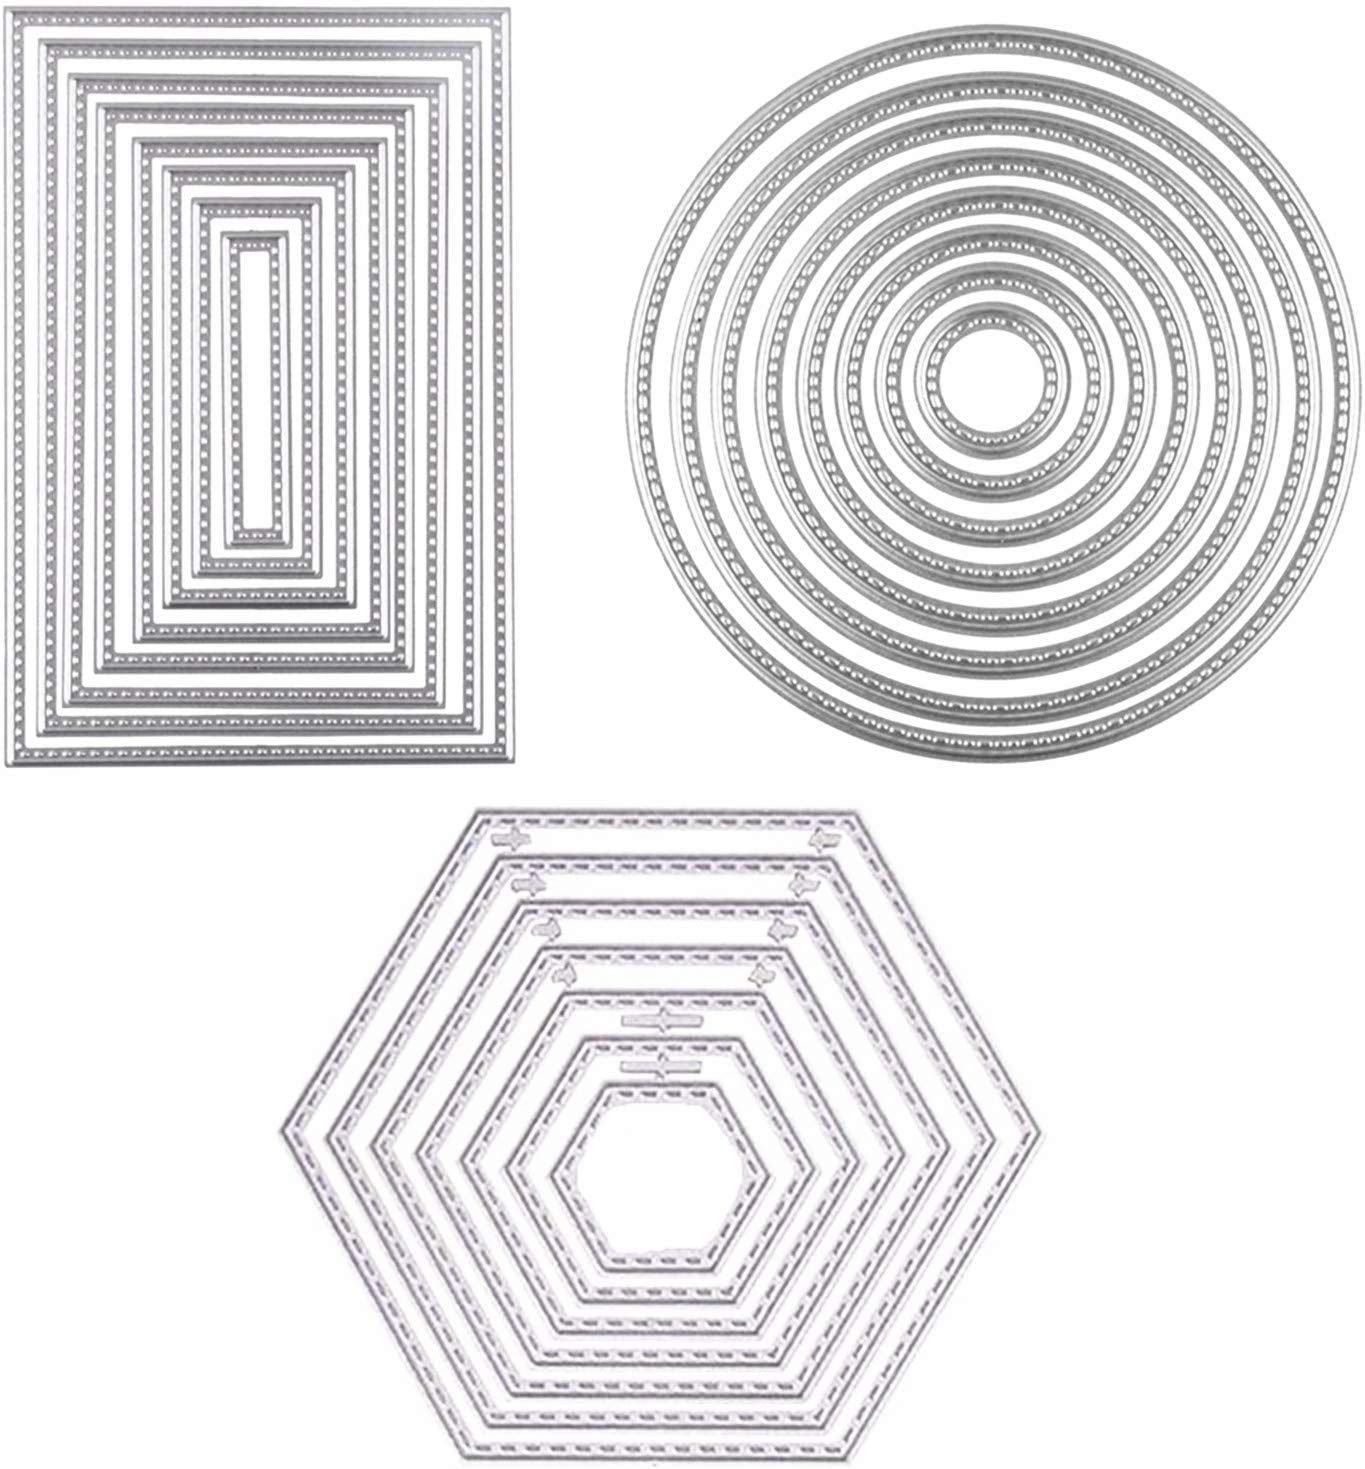 3 Different Shapes of Cutting Dies Stencil Metal Template Molds(Rectangle,Circle & Hexagon),Sweetfamily 24 Pieces Embossing Tools for Card Making,Scrapbooking,Album Paper DIY Crafts